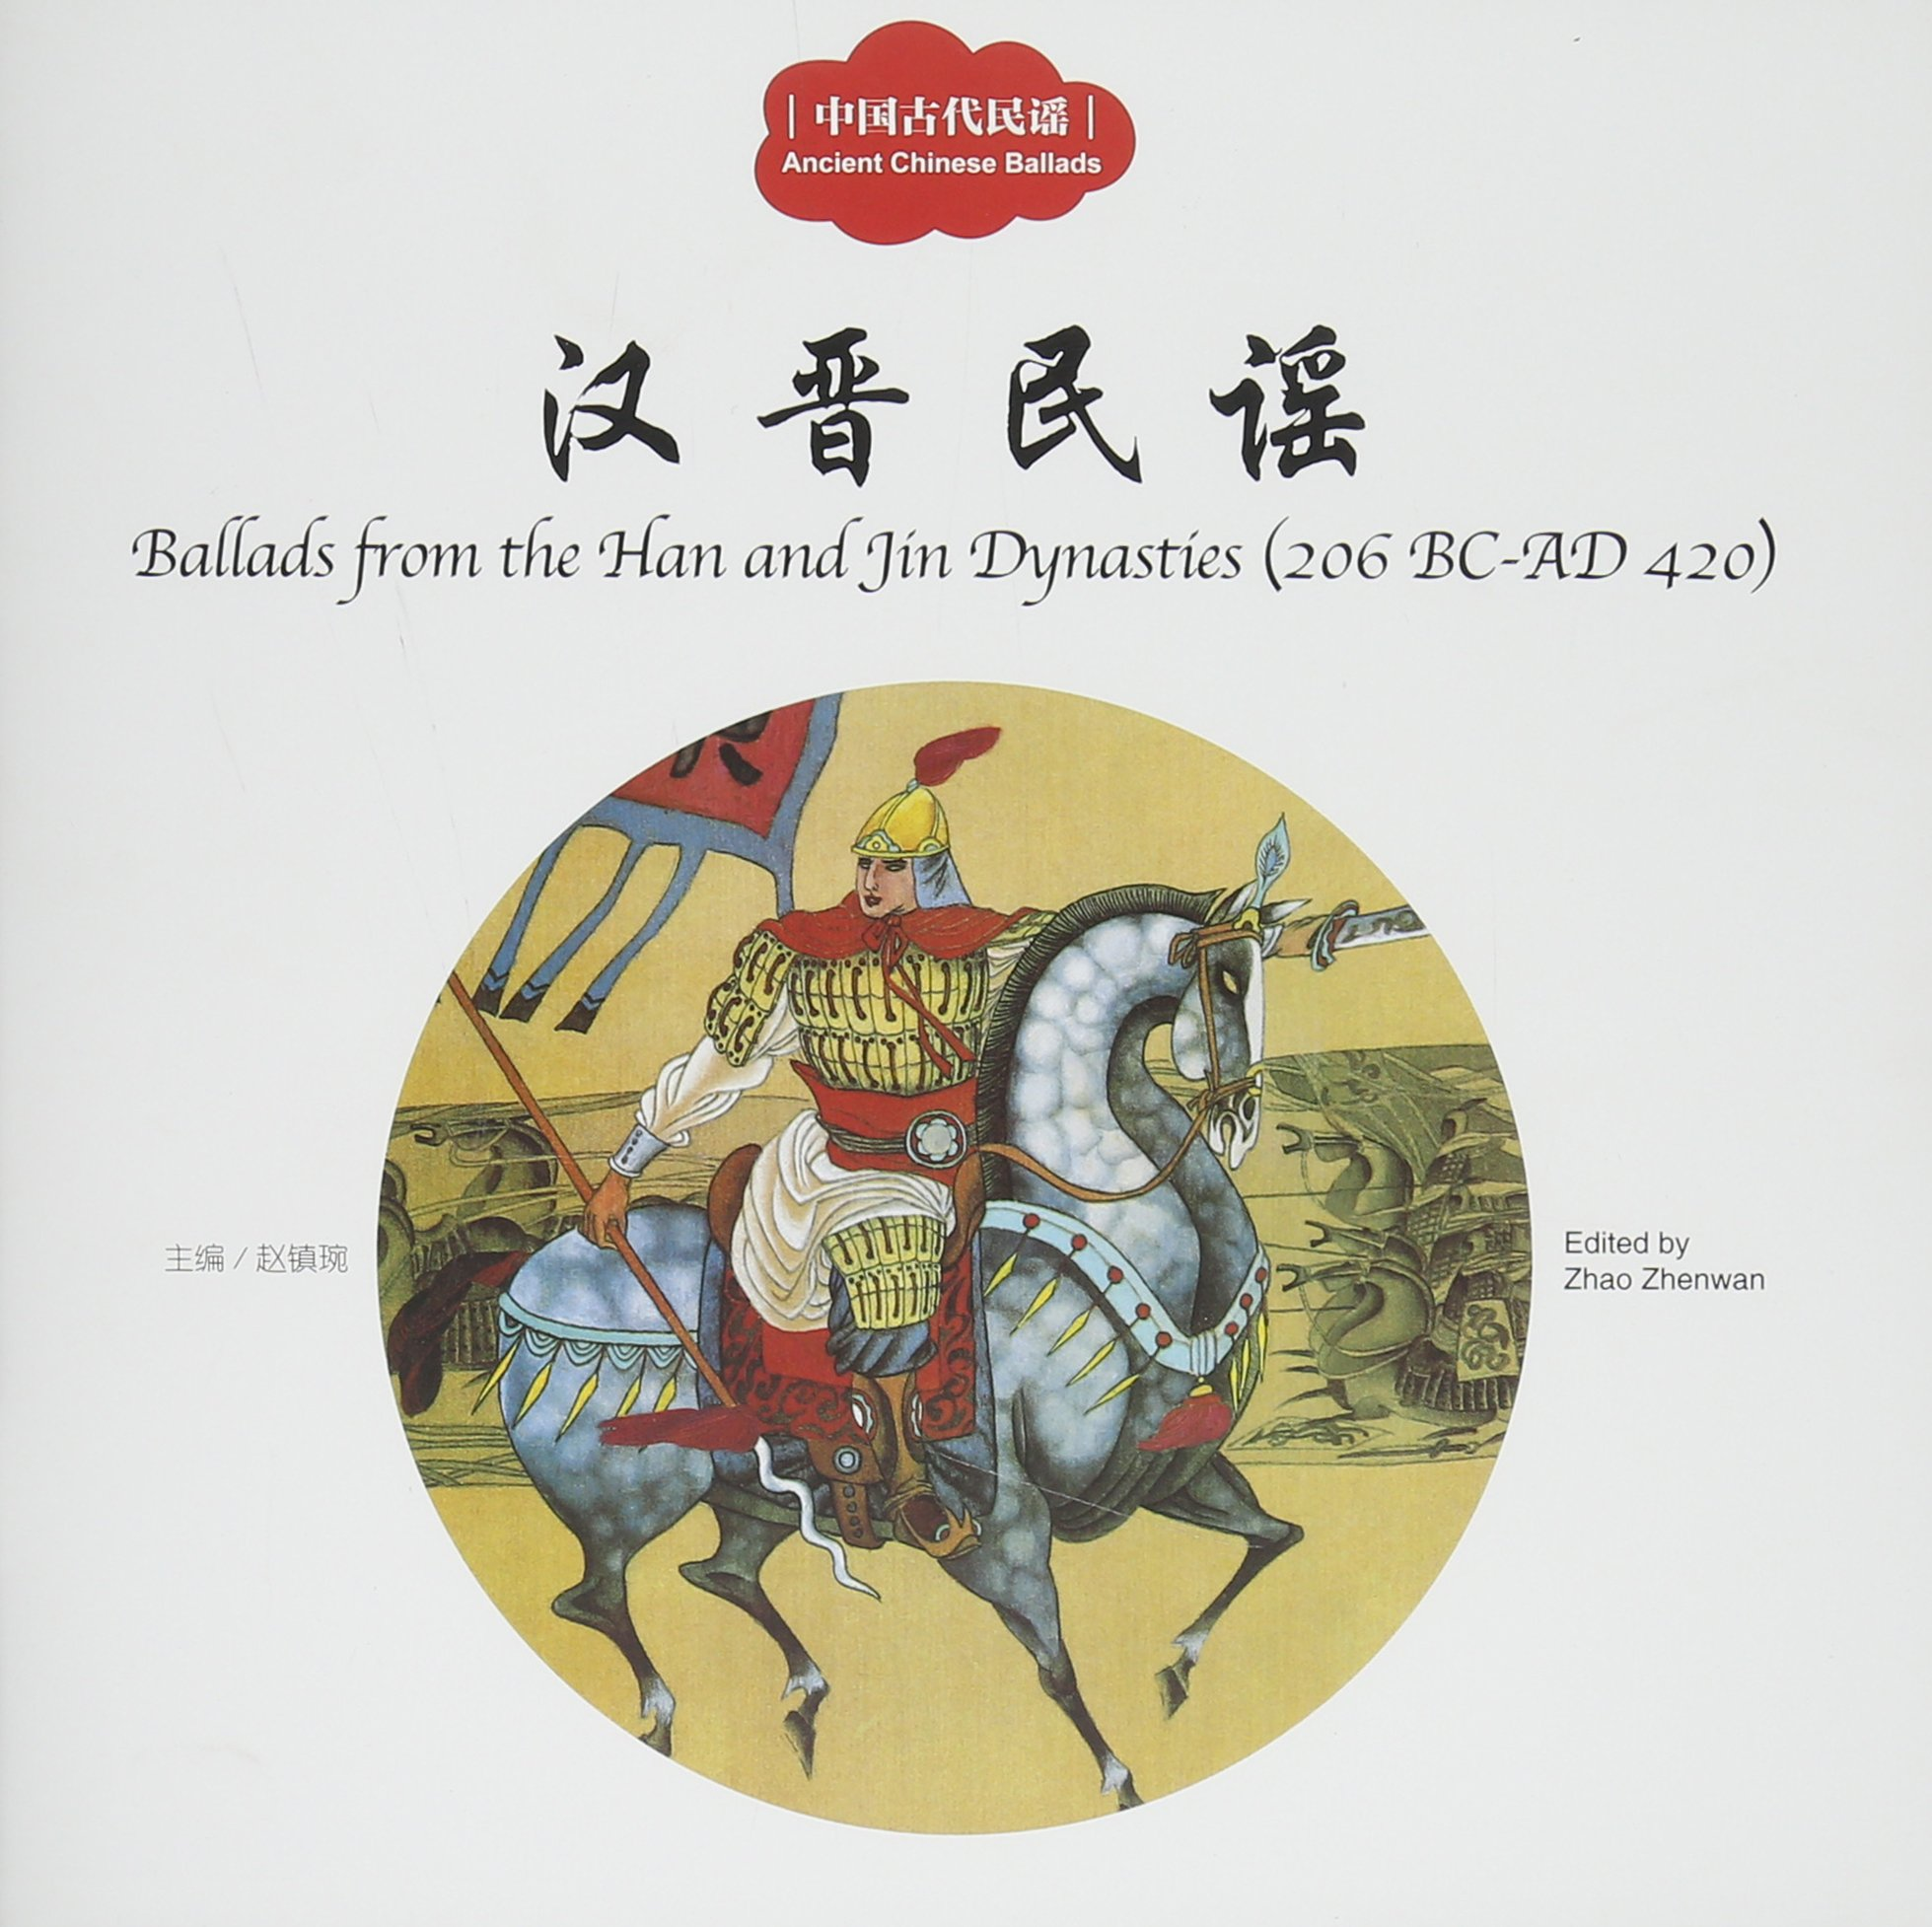 Ballards from the Han and Jin Dynasties (206 BC - AD 420) - First Books for Early Learning Series